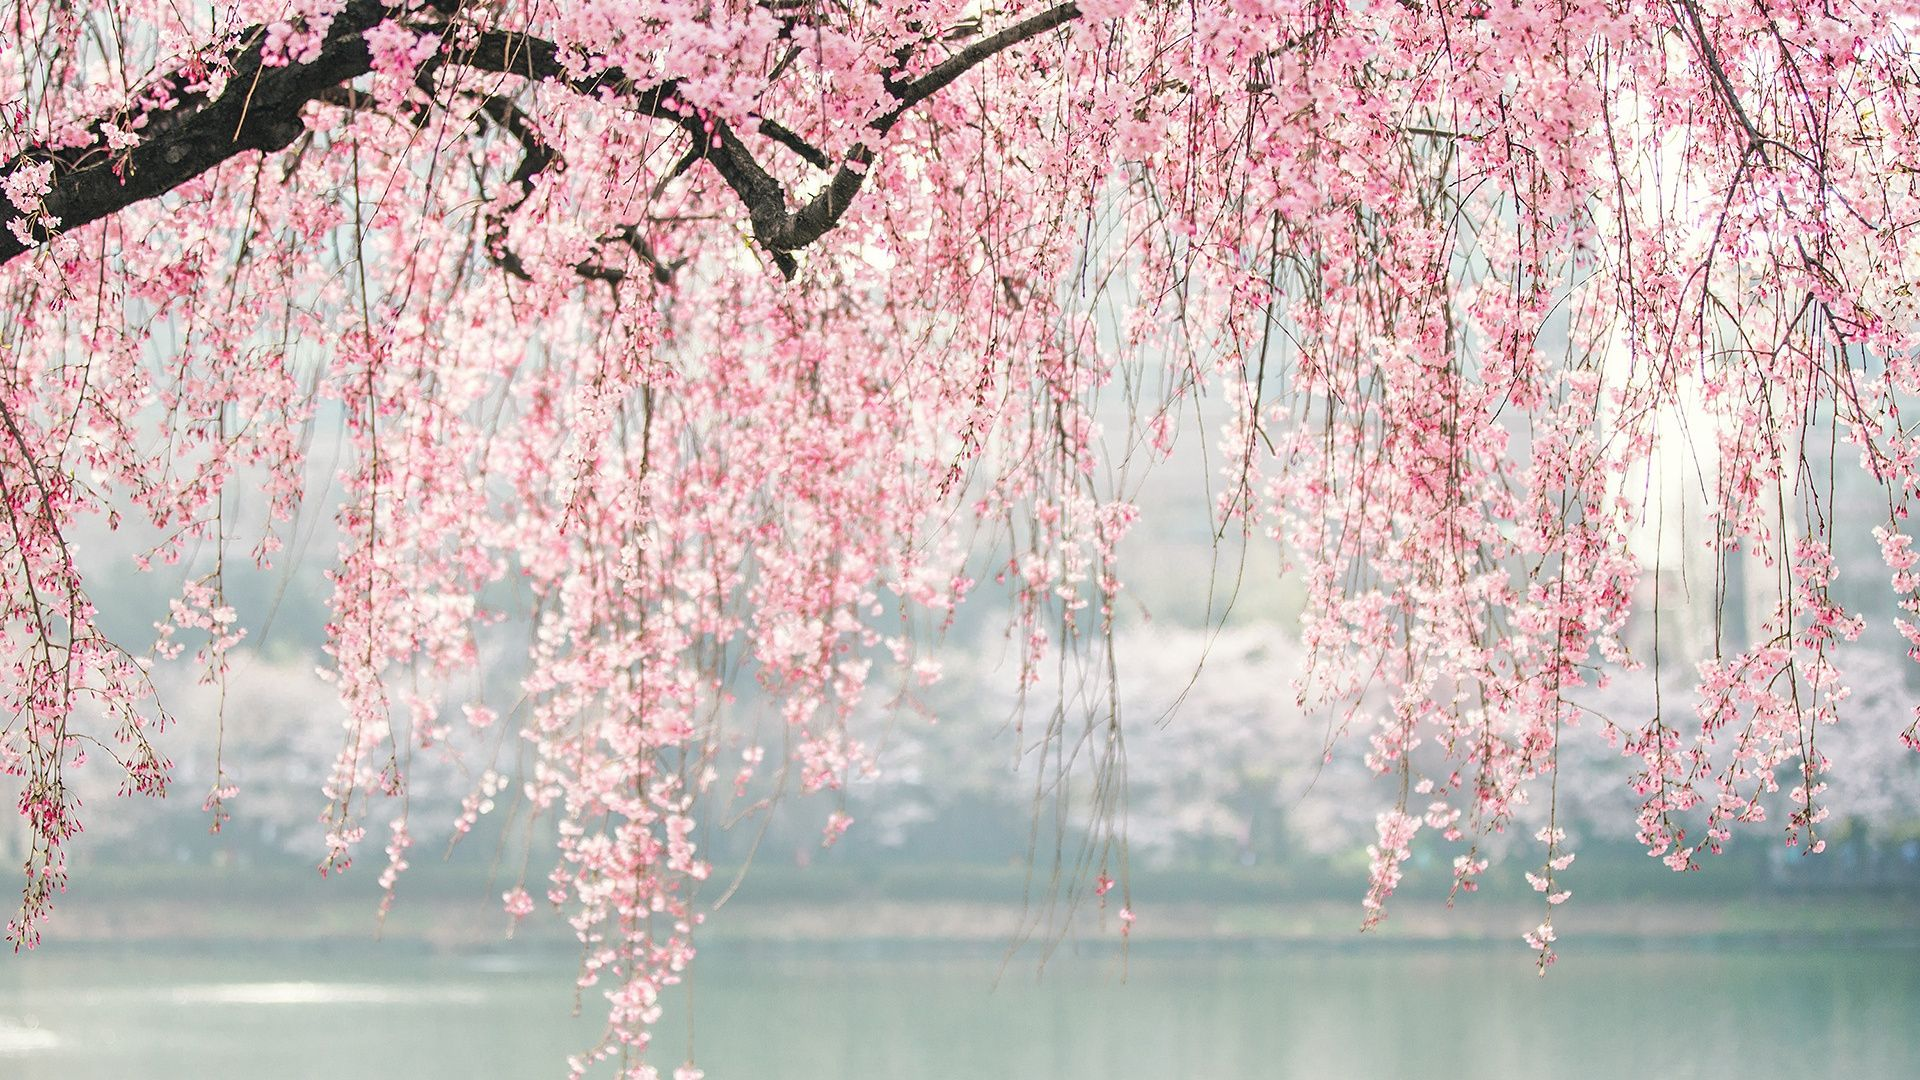 Download 1920x1080 Wallpaper Japan Cherry Blossom Tree Flowers Full Hd Hdtv Fhd 1080p 192 In 2020 Aesthetic Desktop Wallpaper White Blossom Tree Cherry Blossom